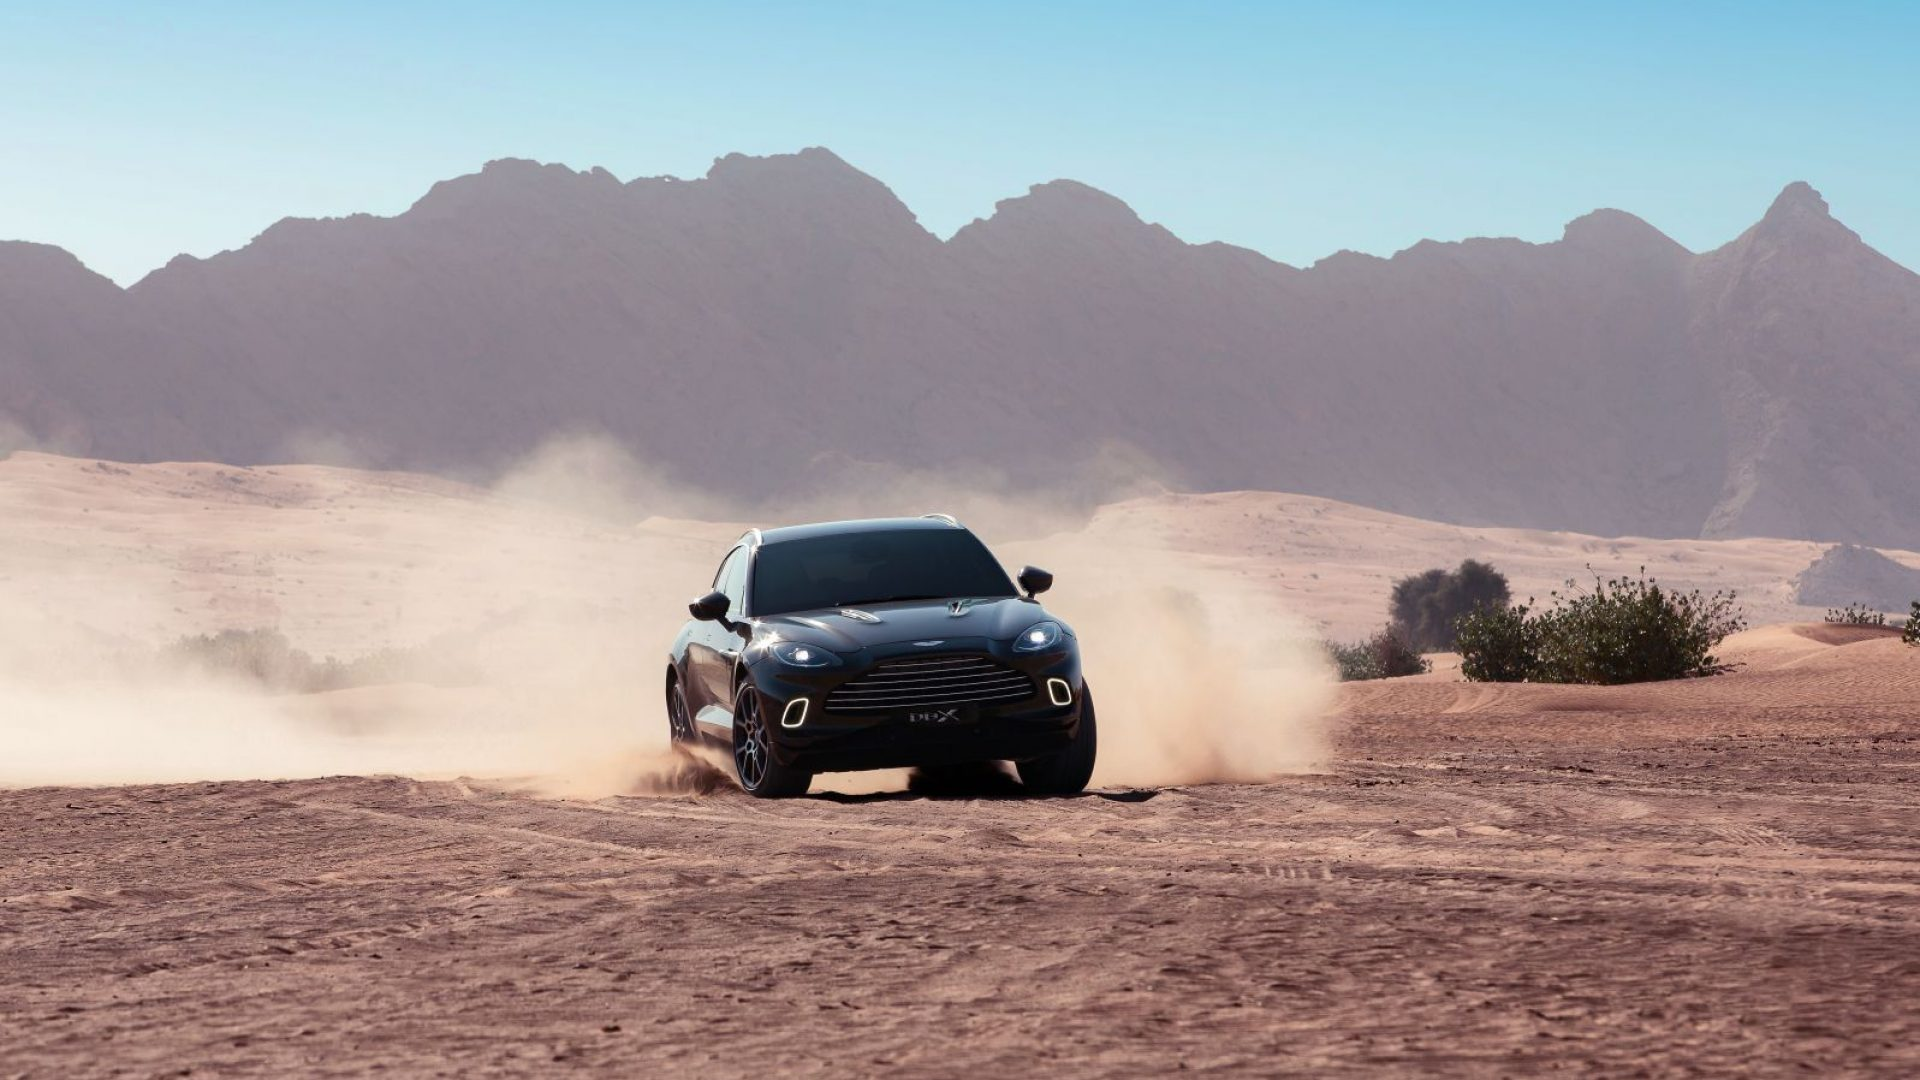 aston-martin-dbx-in-the-middle-east-23-jpg.